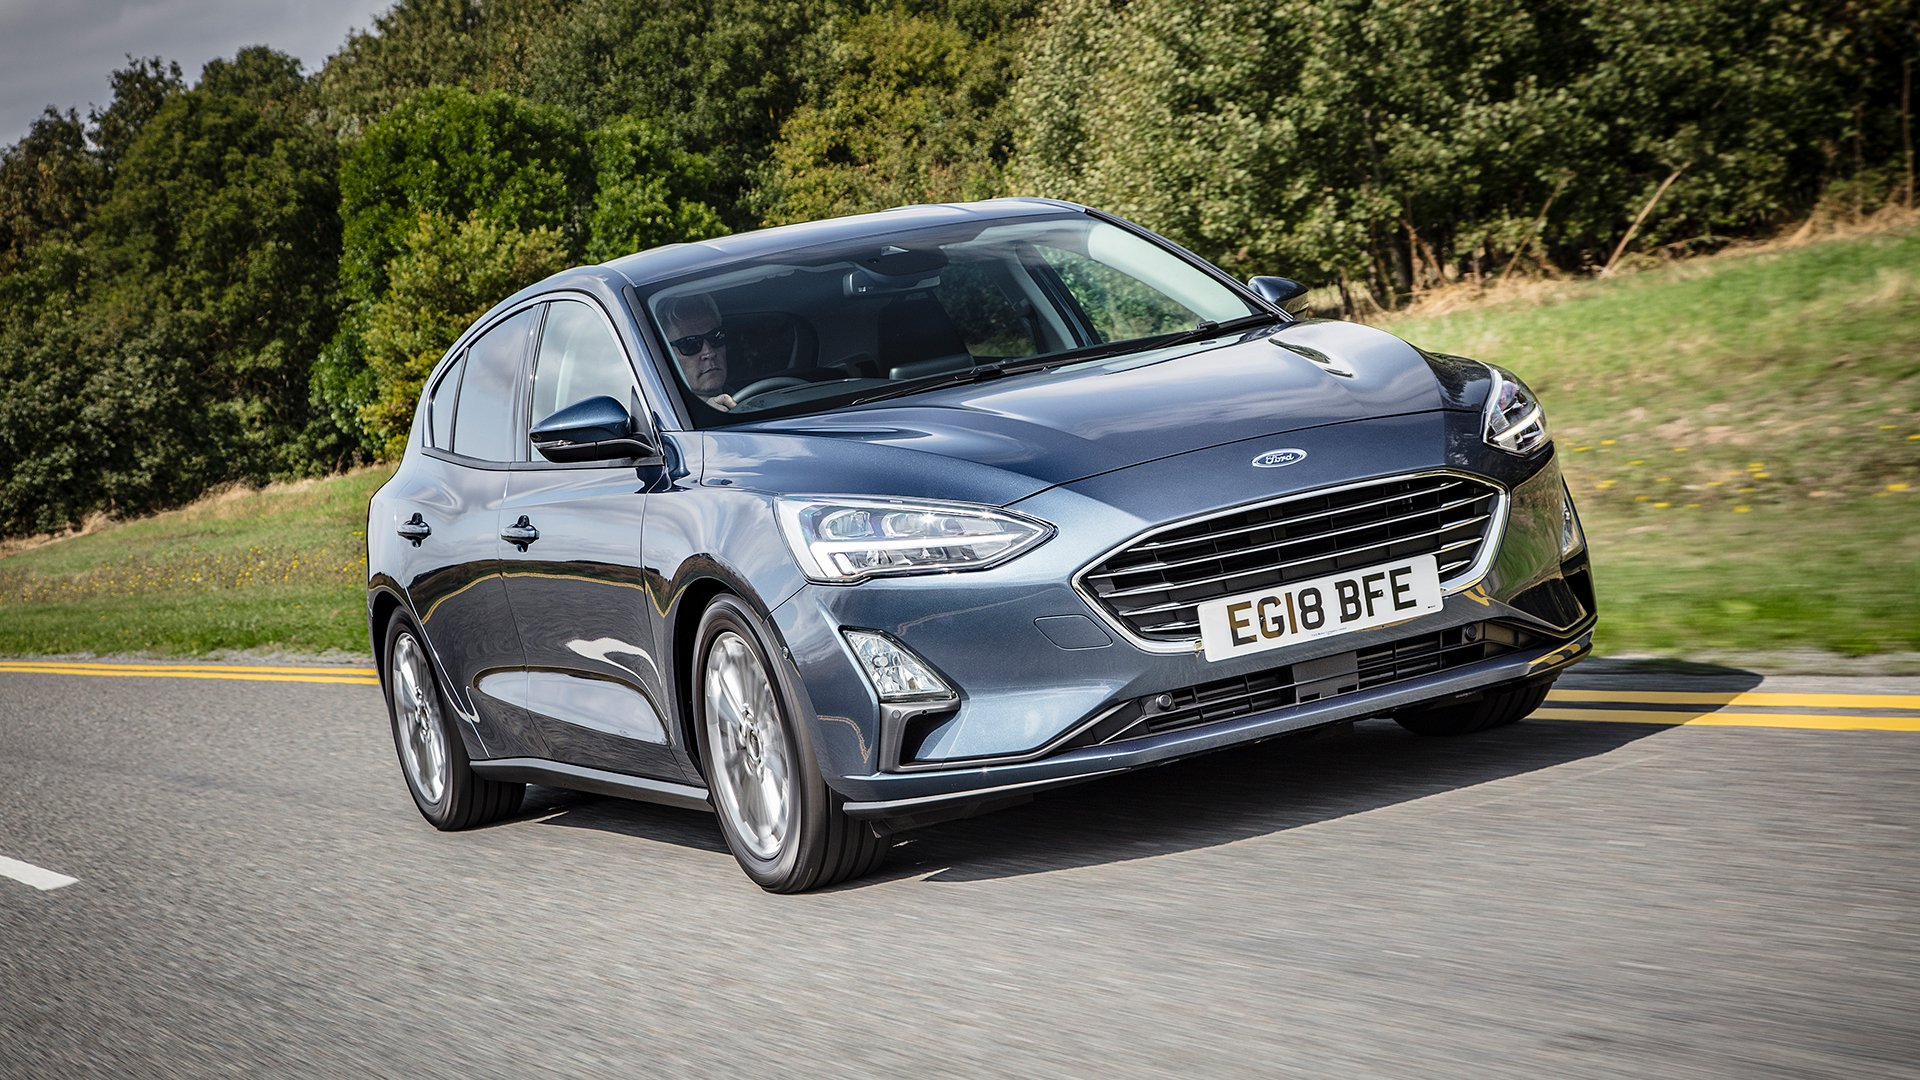 The top 10 most popular used cars bought in the UK